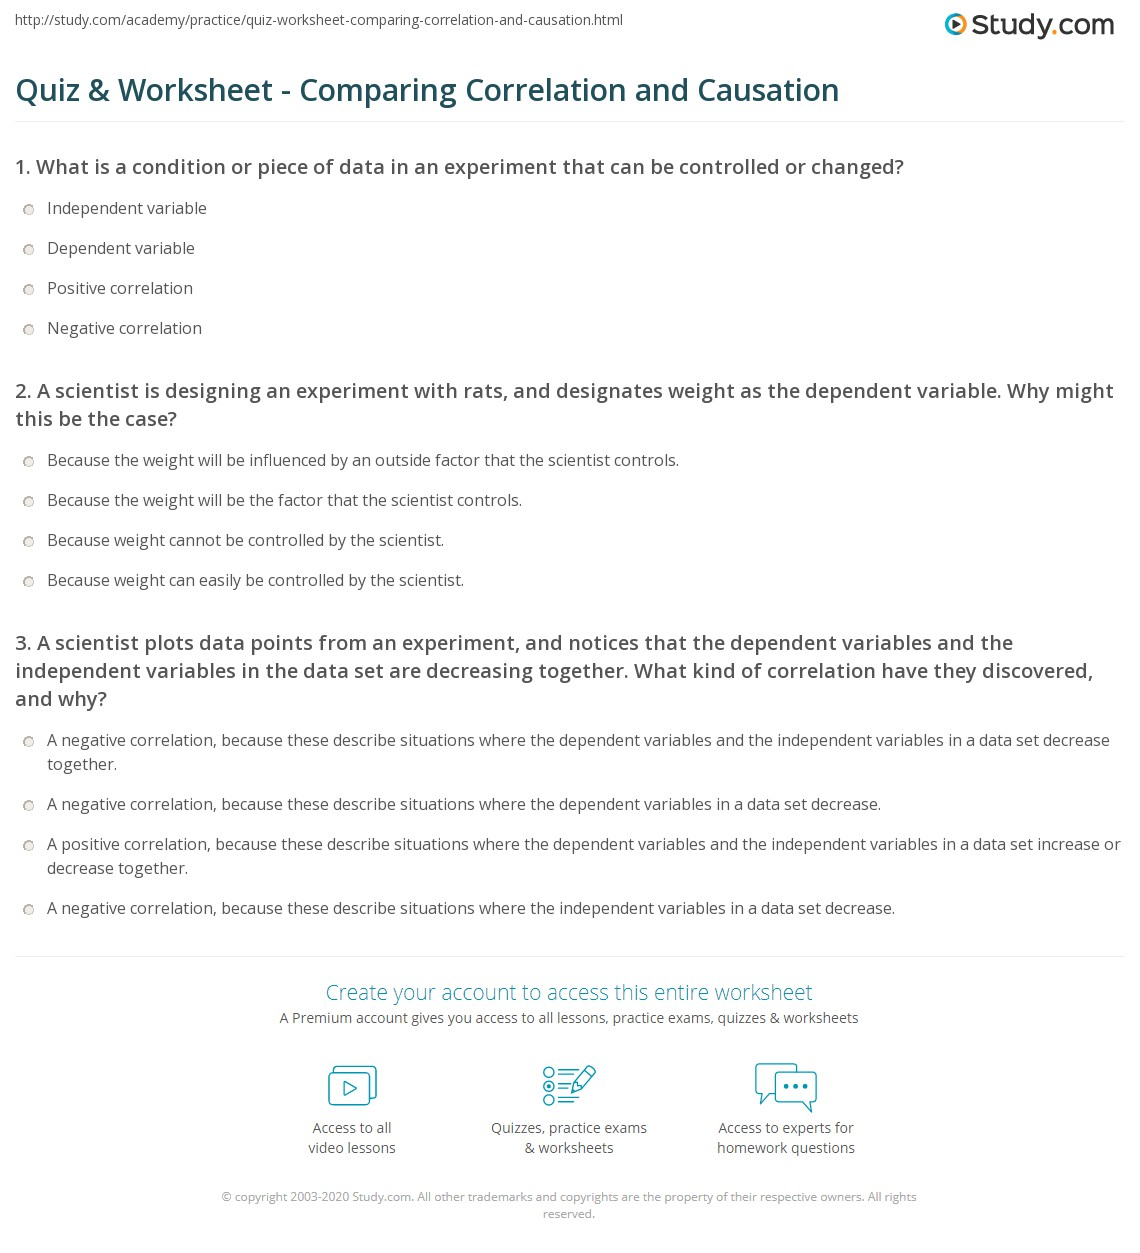 Aldiablosus  Unique Quiz Amp Worksheet  Comparing Correlation And Causation  Studycom With Lovely Print Correlation Vs Causation Differences Amp Definition Worksheet With Divine Simplifying Complex Numbers Worksheet Also Donald Duck In Mathmagic Land Worksheet In Addition Friendship Worksheets And Expressions And Equations Worksheet As Well As Combining Functions Worksheet Additionally Volume Of Triangular Prism Worksheet From Studycom With Aldiablosus  Lovely Quiz Amp Worksheet  Comparing Correlation And Causation  Studycom With Divine Print Correlation Vs Causation Differences Amp Definition Worksheet And Unique Simplifying Complex Numbers Worksheet Also Donald Duck In Mathmagic Land Worksheet In Addition Friendship Worksheets From Studycom